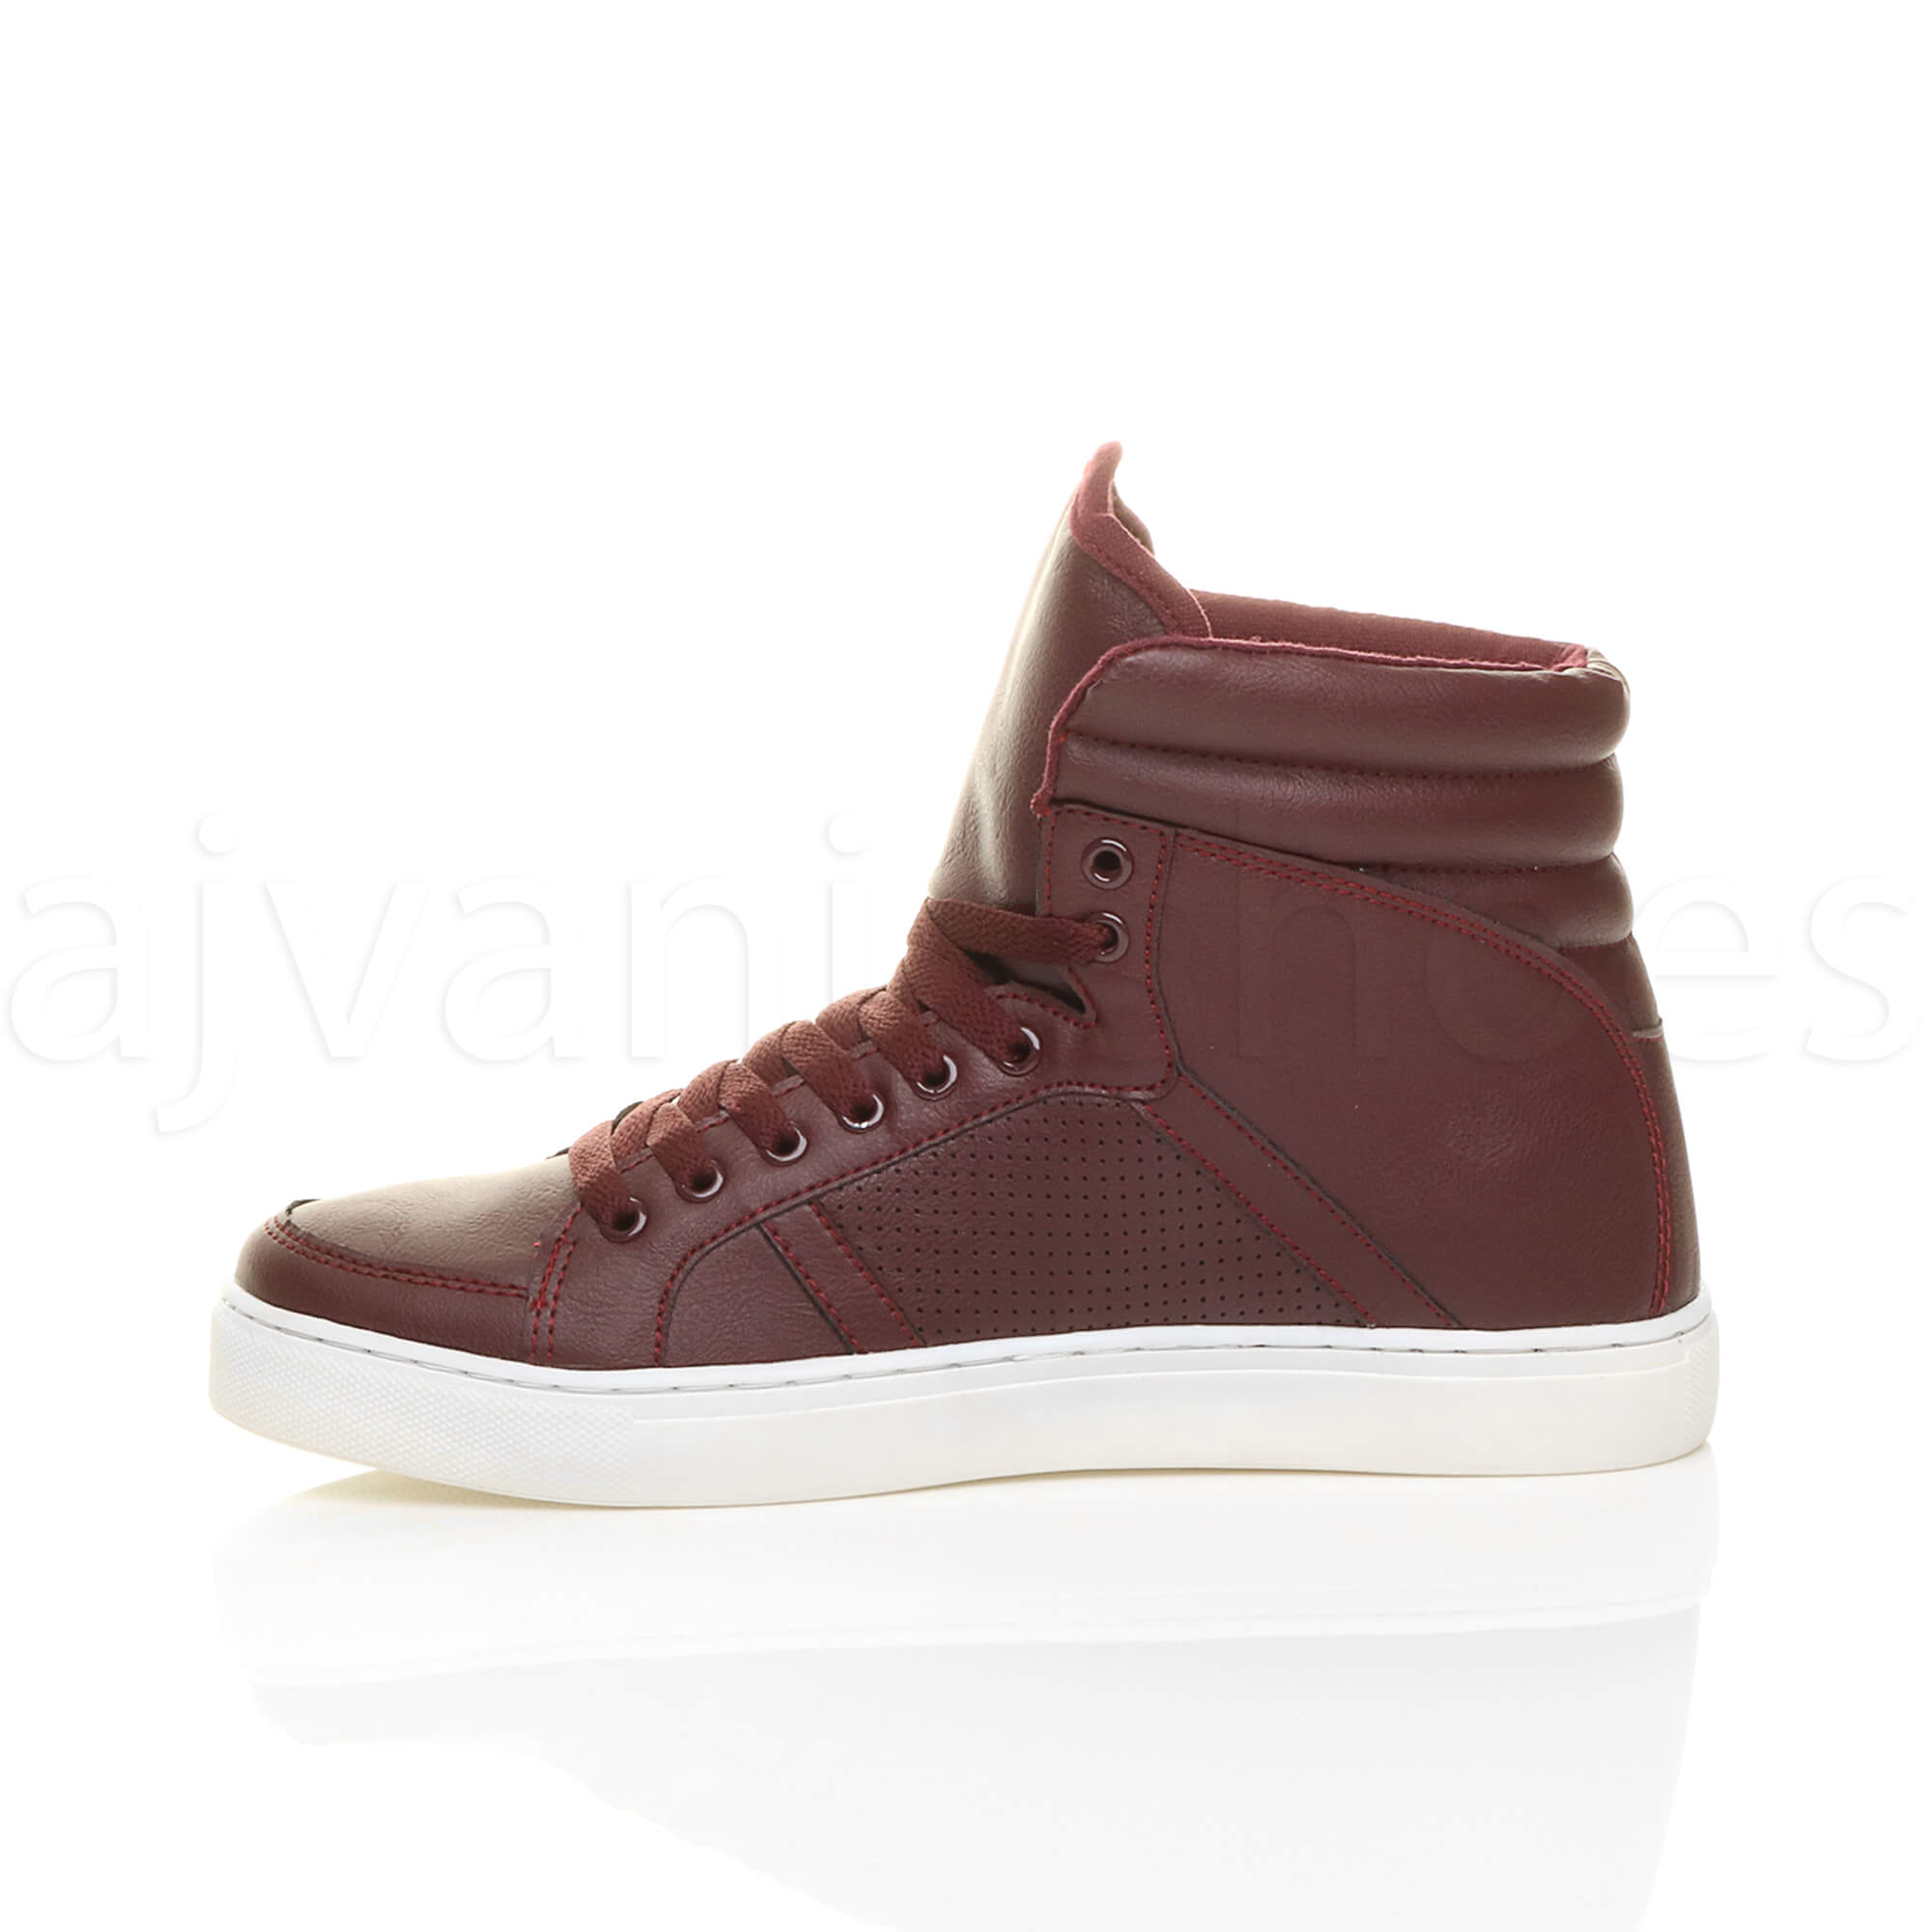 MENS-LACE-UP-CASUAL-FLAT-HI-HIGH-TOP-ANKLE-BOOTS-SHOES-TRAINERS-SNEAKERS-SIZE thumbnail 11